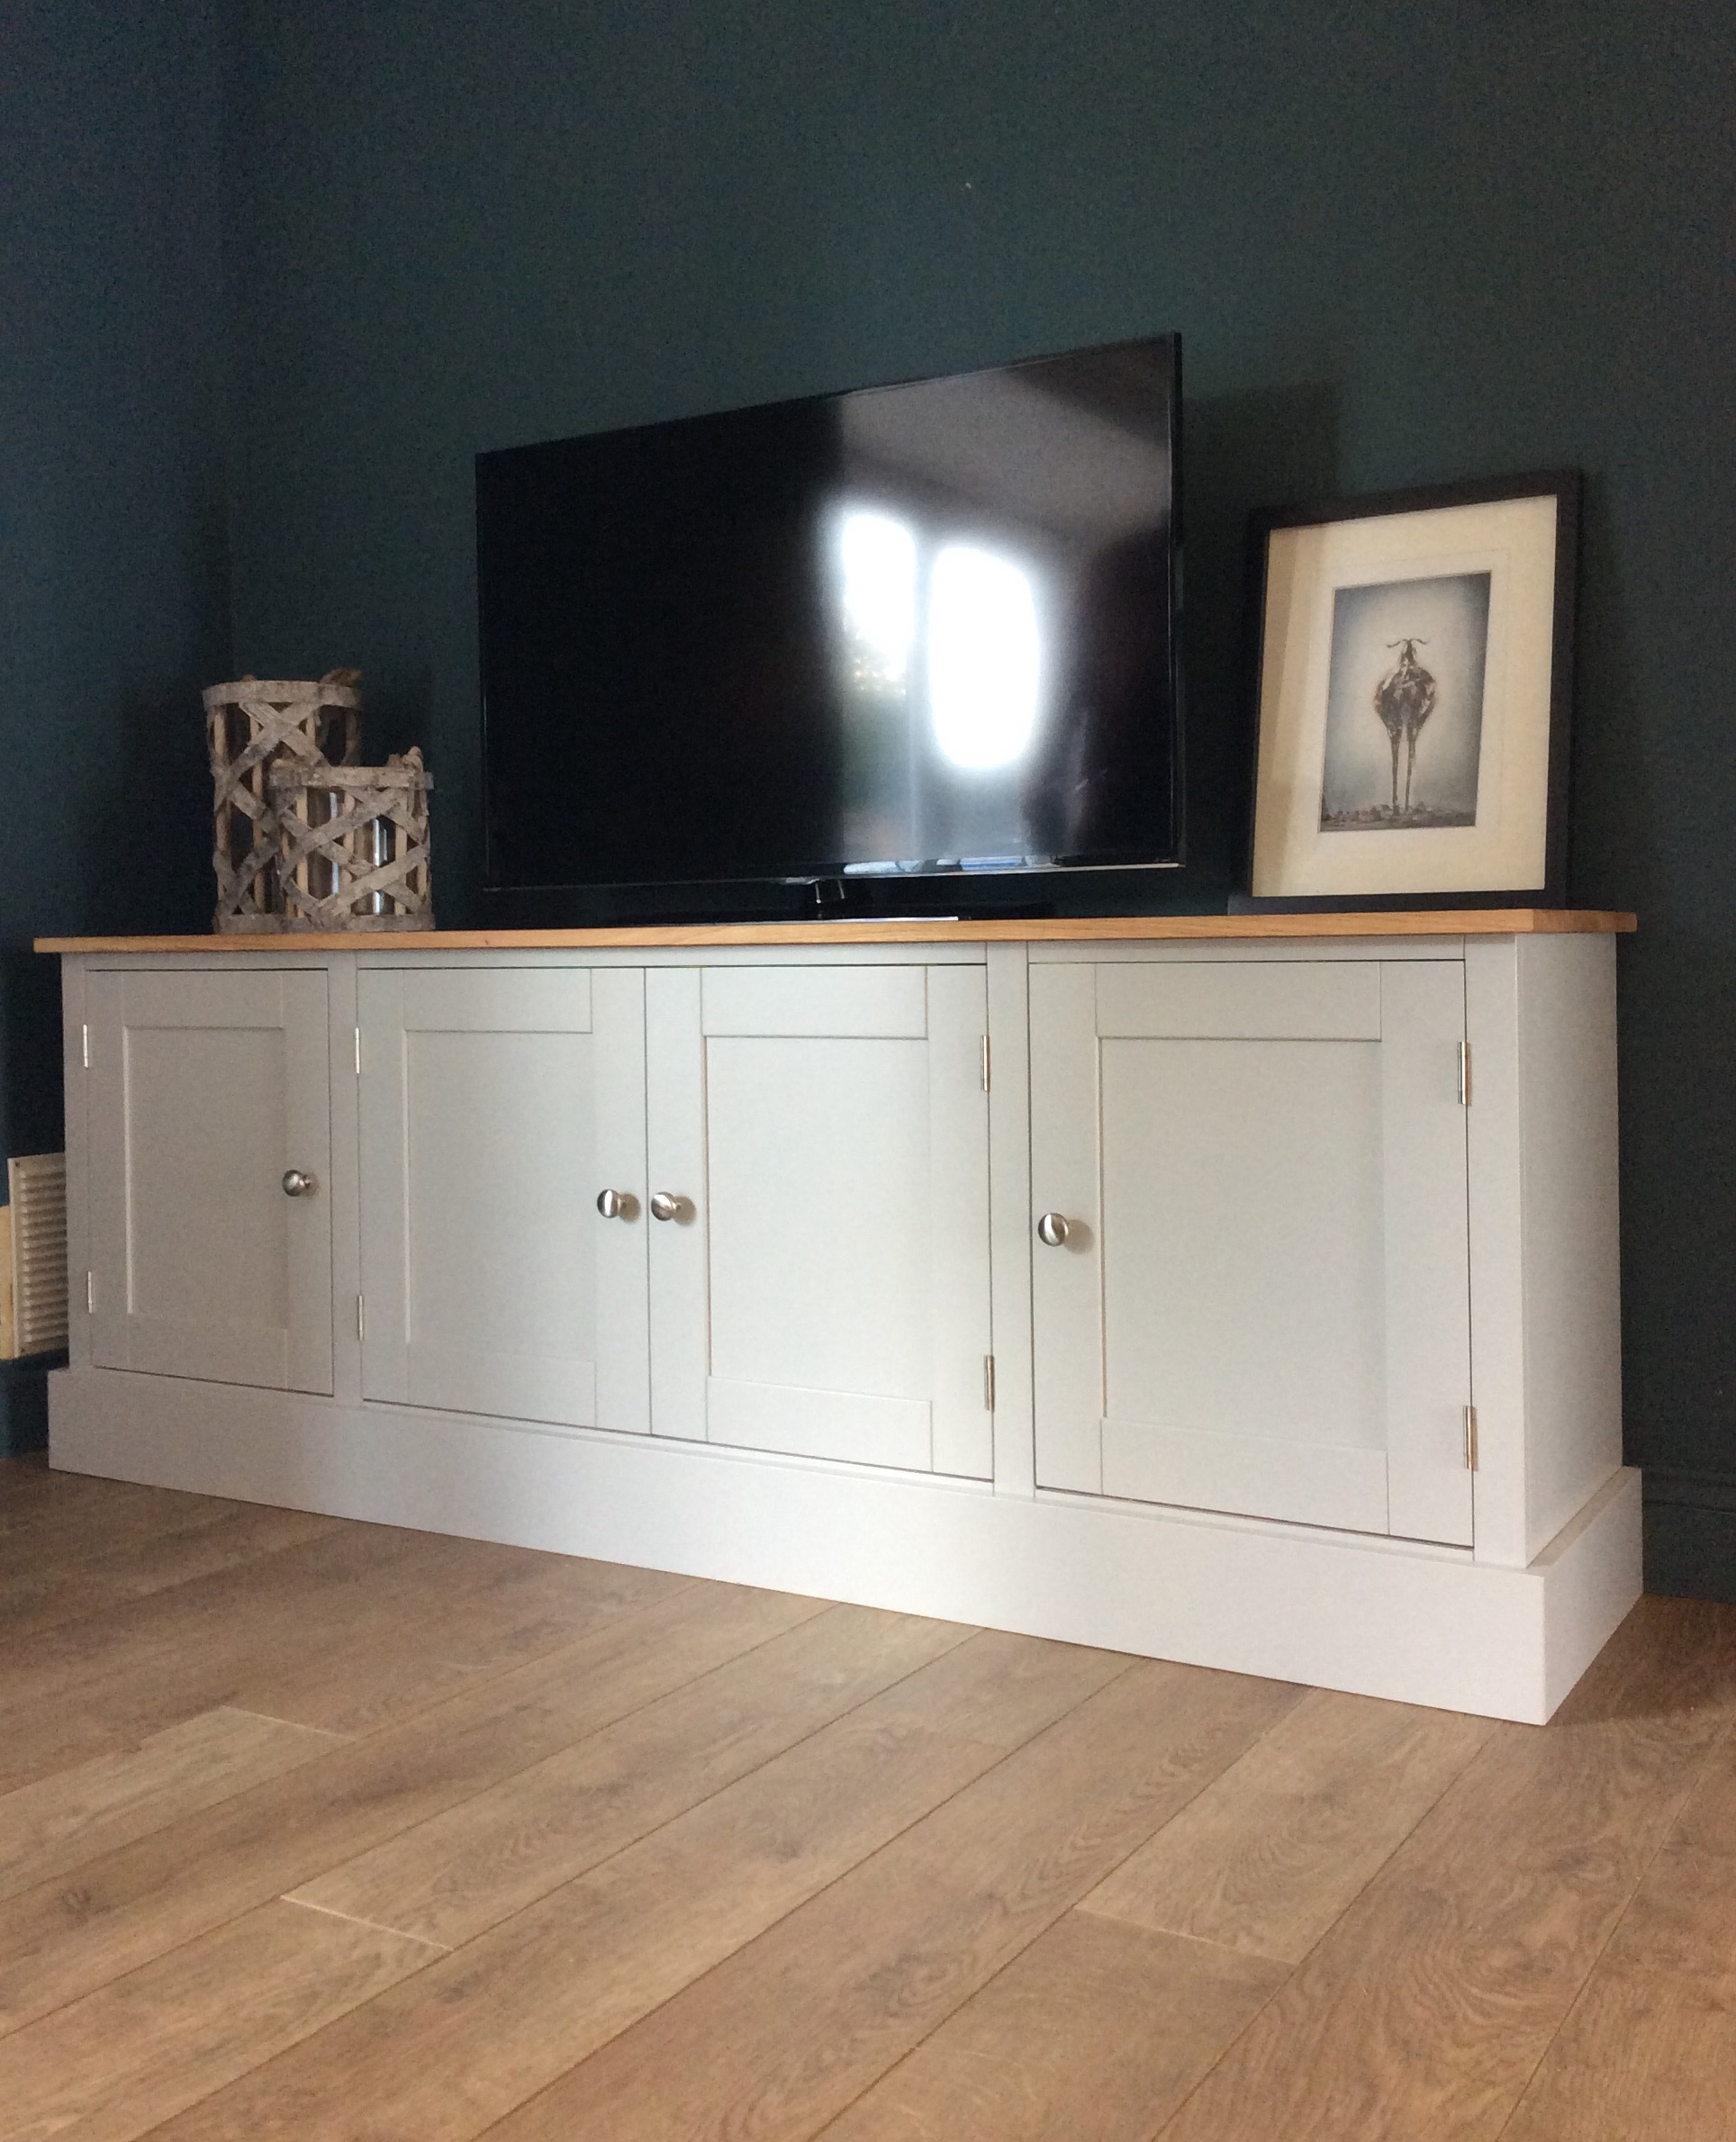 6FT SOLID OAK & PINE PAINTED TV CUPBOARD - NEST AT NUMBER 20